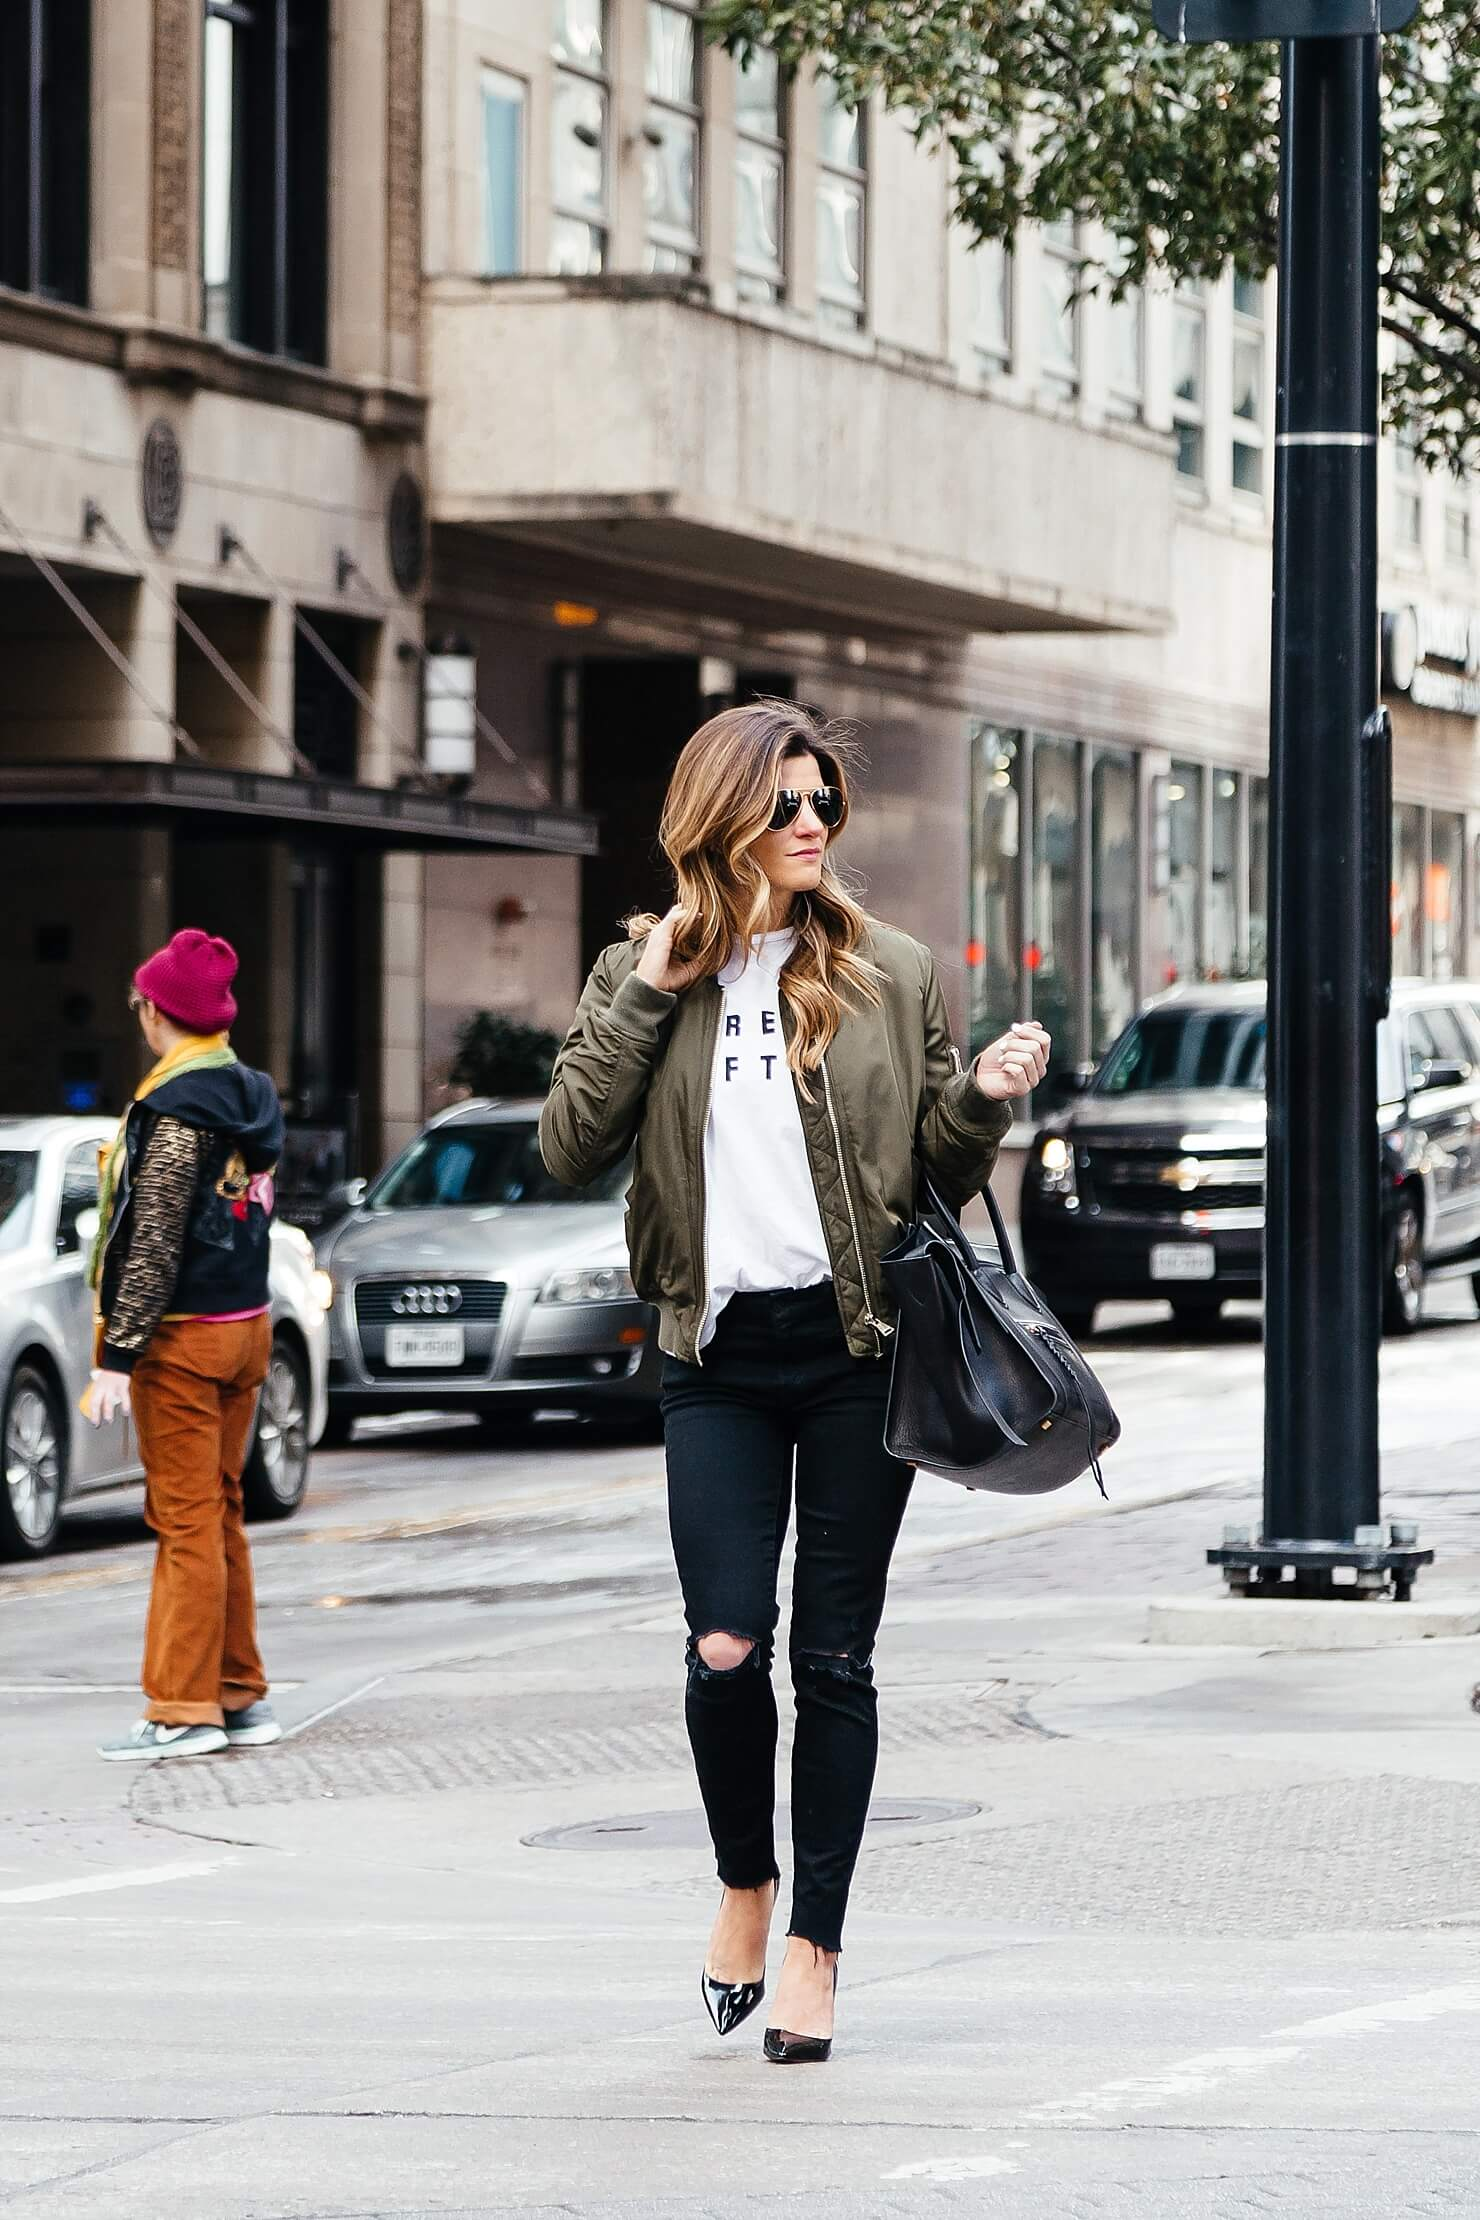 how to wear a bomber jacket, topshop olive green bomber jacket, sincerely jules dream often white tee, mother slit knee denim, patent leather pumps, dressing up a tee shirt, bomber jacket outfit